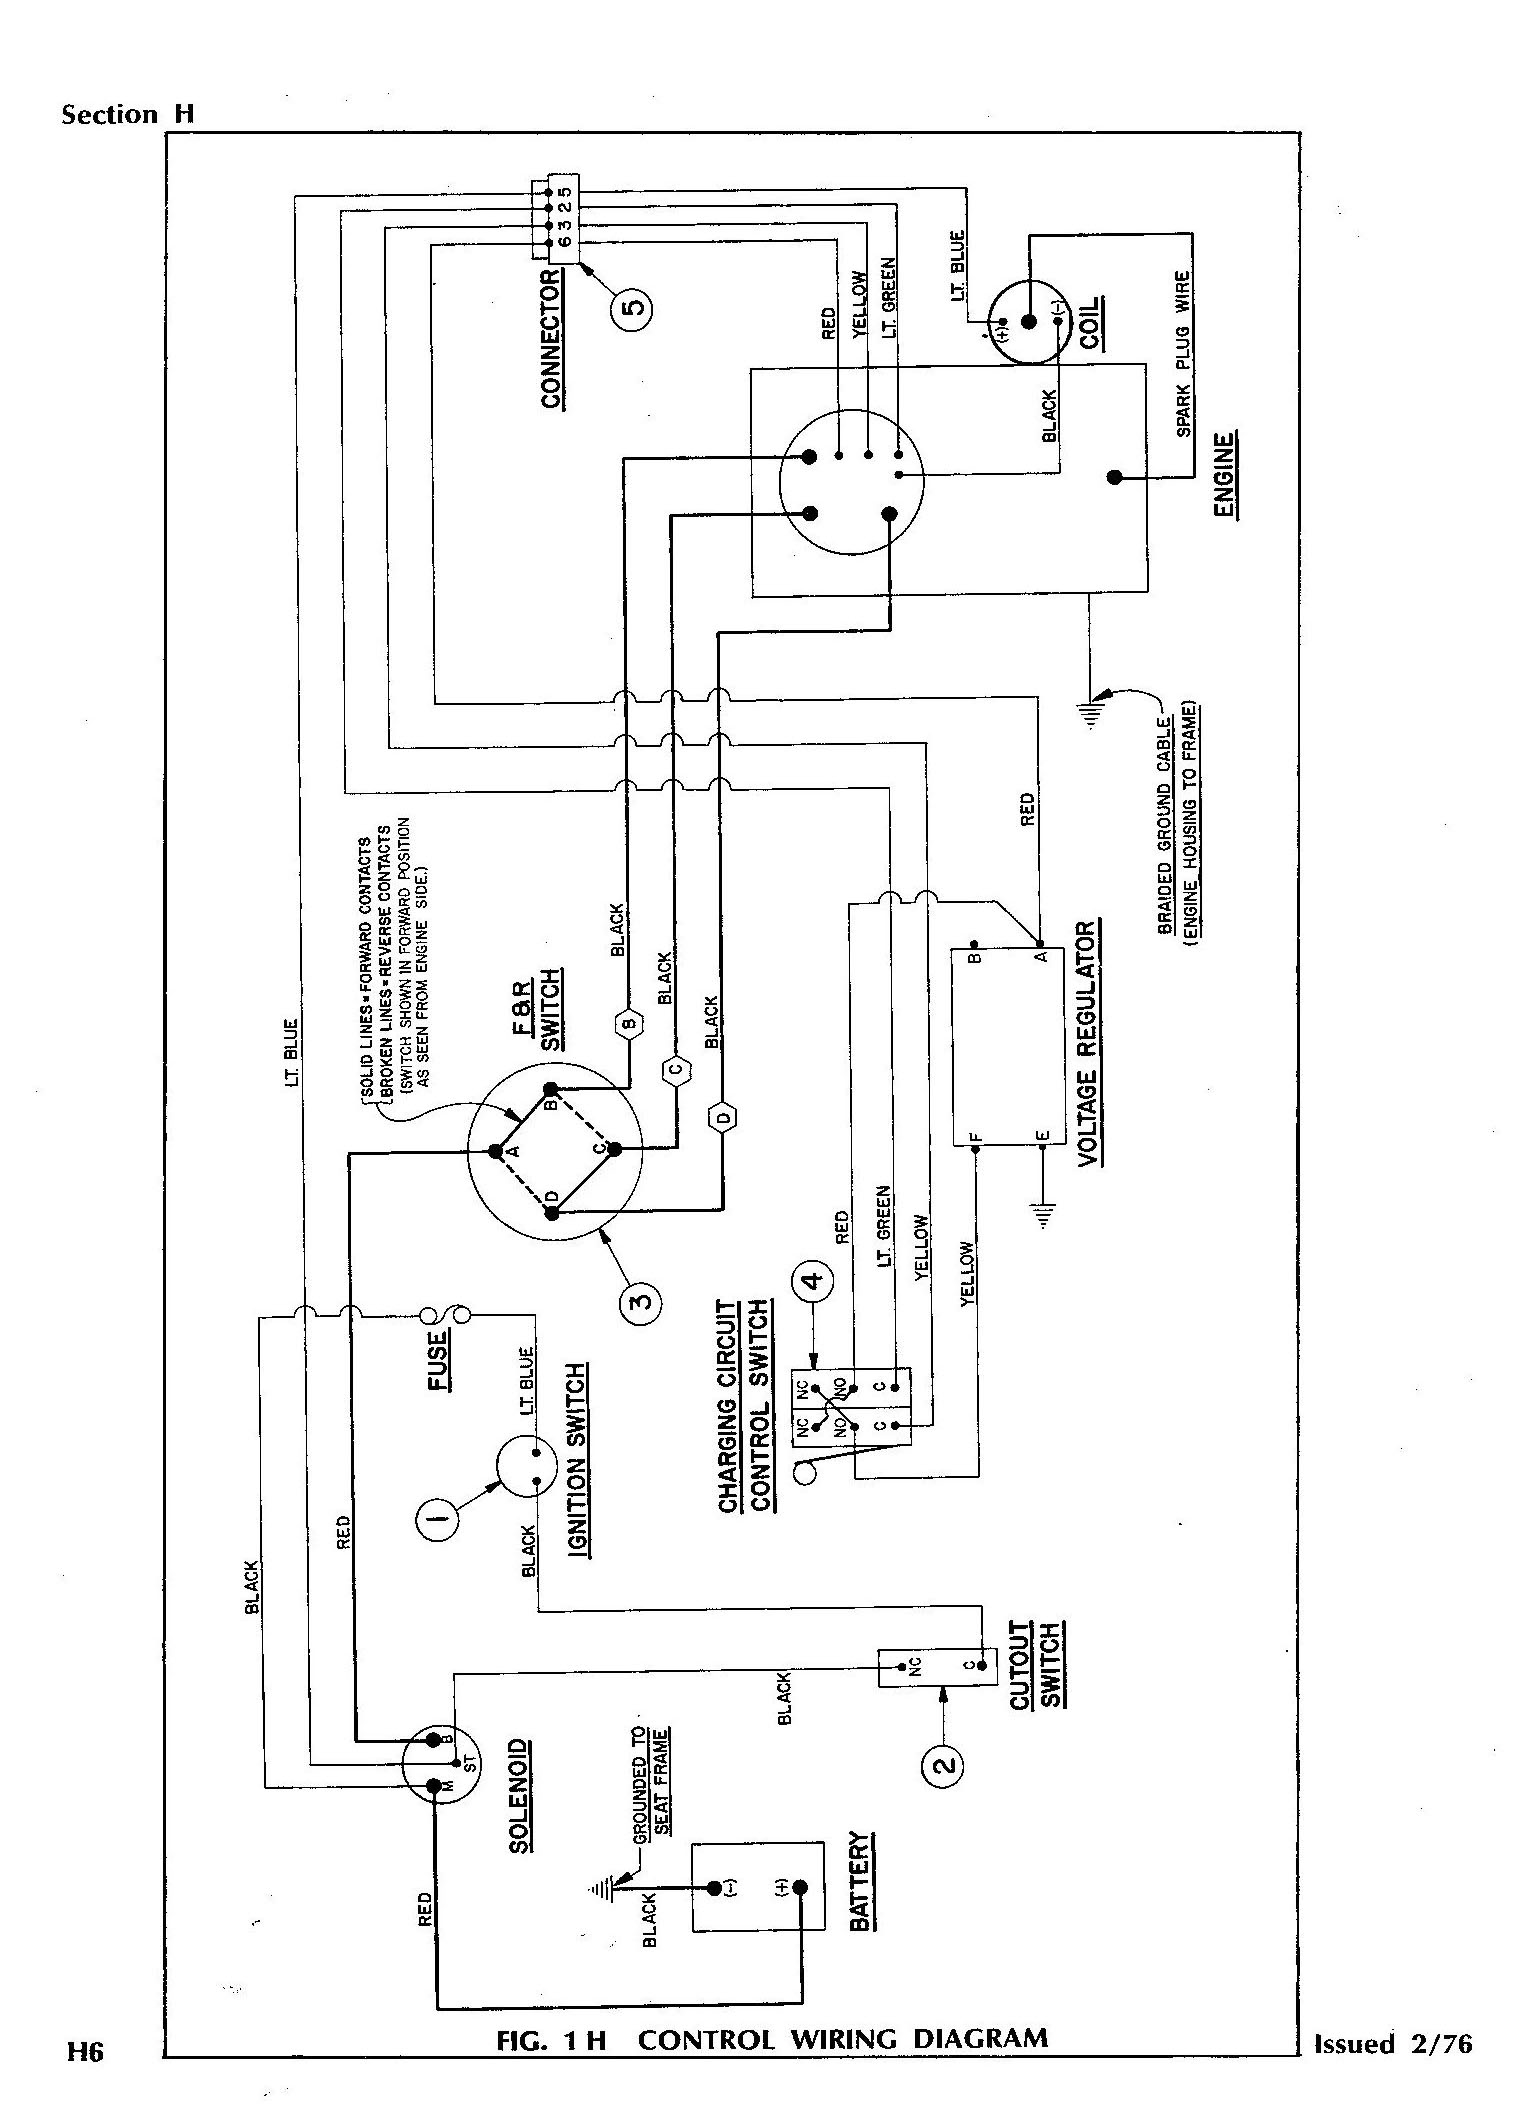 wiring diagram 1989 ezgo golf cart with Gas For Yamaha Carts Wiring Diagrams on Golf Cart Solenoid Wiring Diagram further Ez Go 20484 Charger Schematic Wiring Diagrams as well 6msfw Ezgo T27893 Need Wiring Diagram 1993 Ezgo Stroke together with 1985 Ez Go Wiring Diagram additionally E Z Go Golf Wiring Diagram.